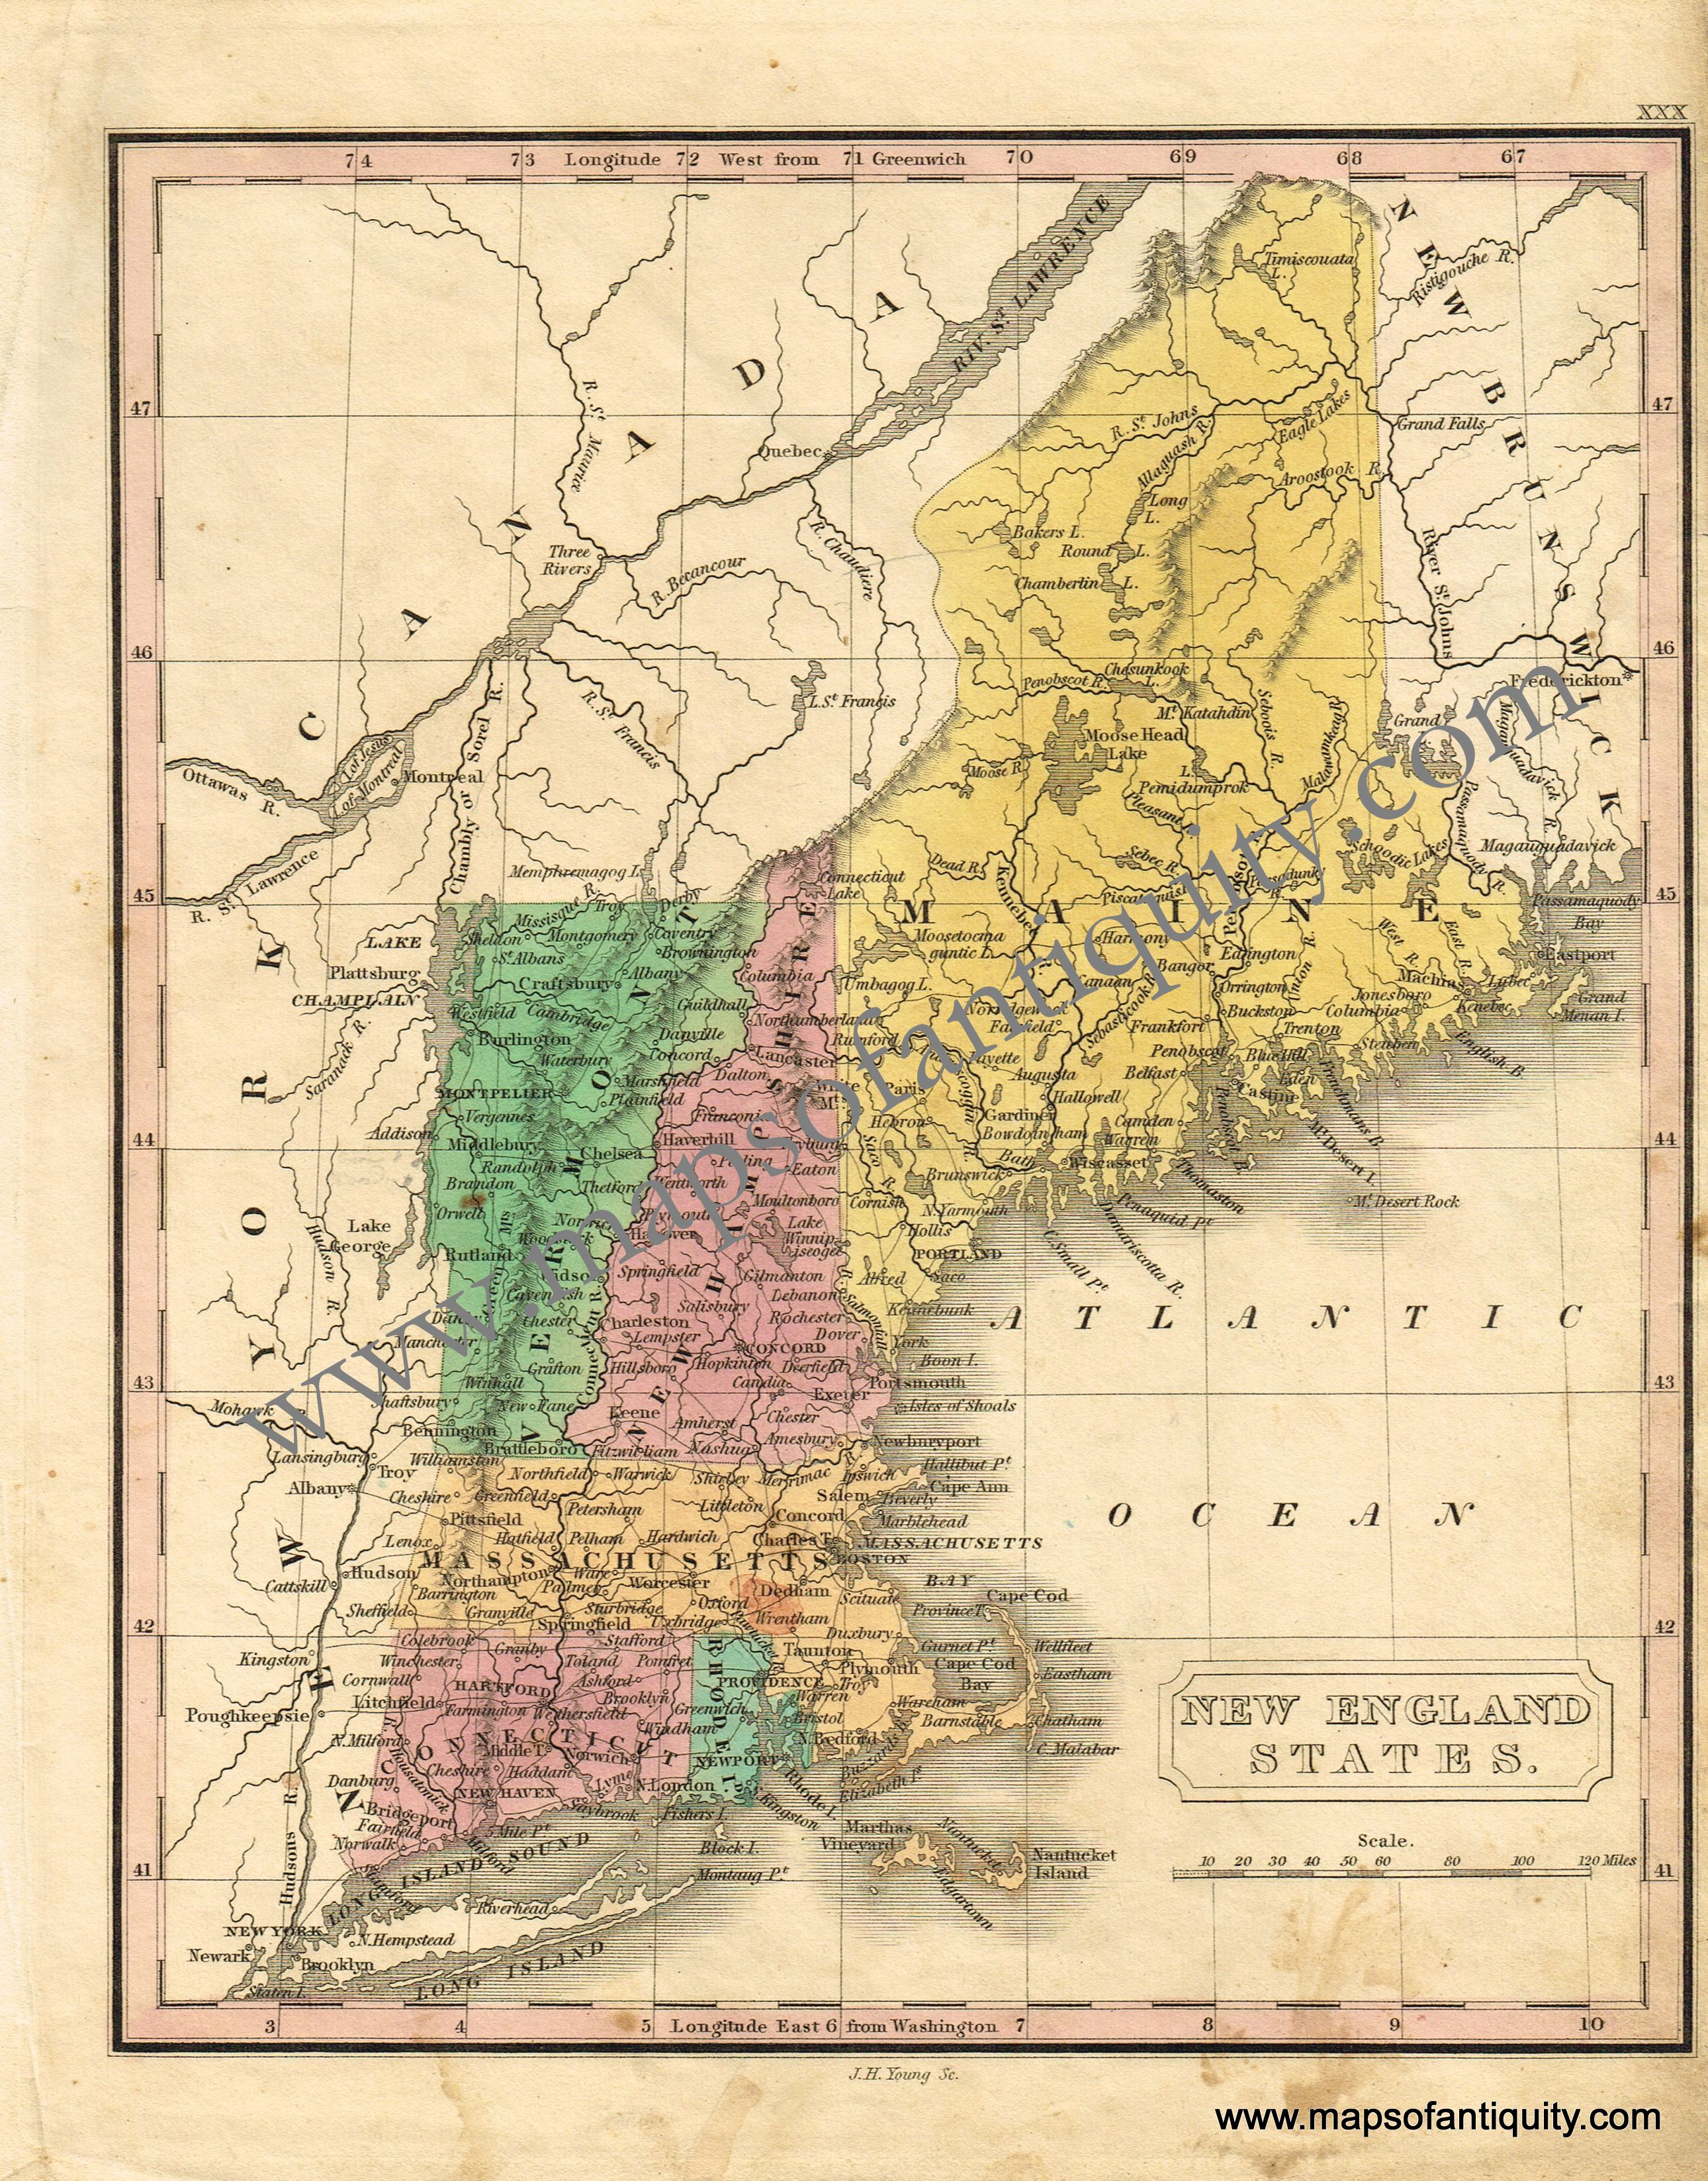 New England States Antique Maps And Charts Original Vintage Rare Historical Prints Reproductions Of